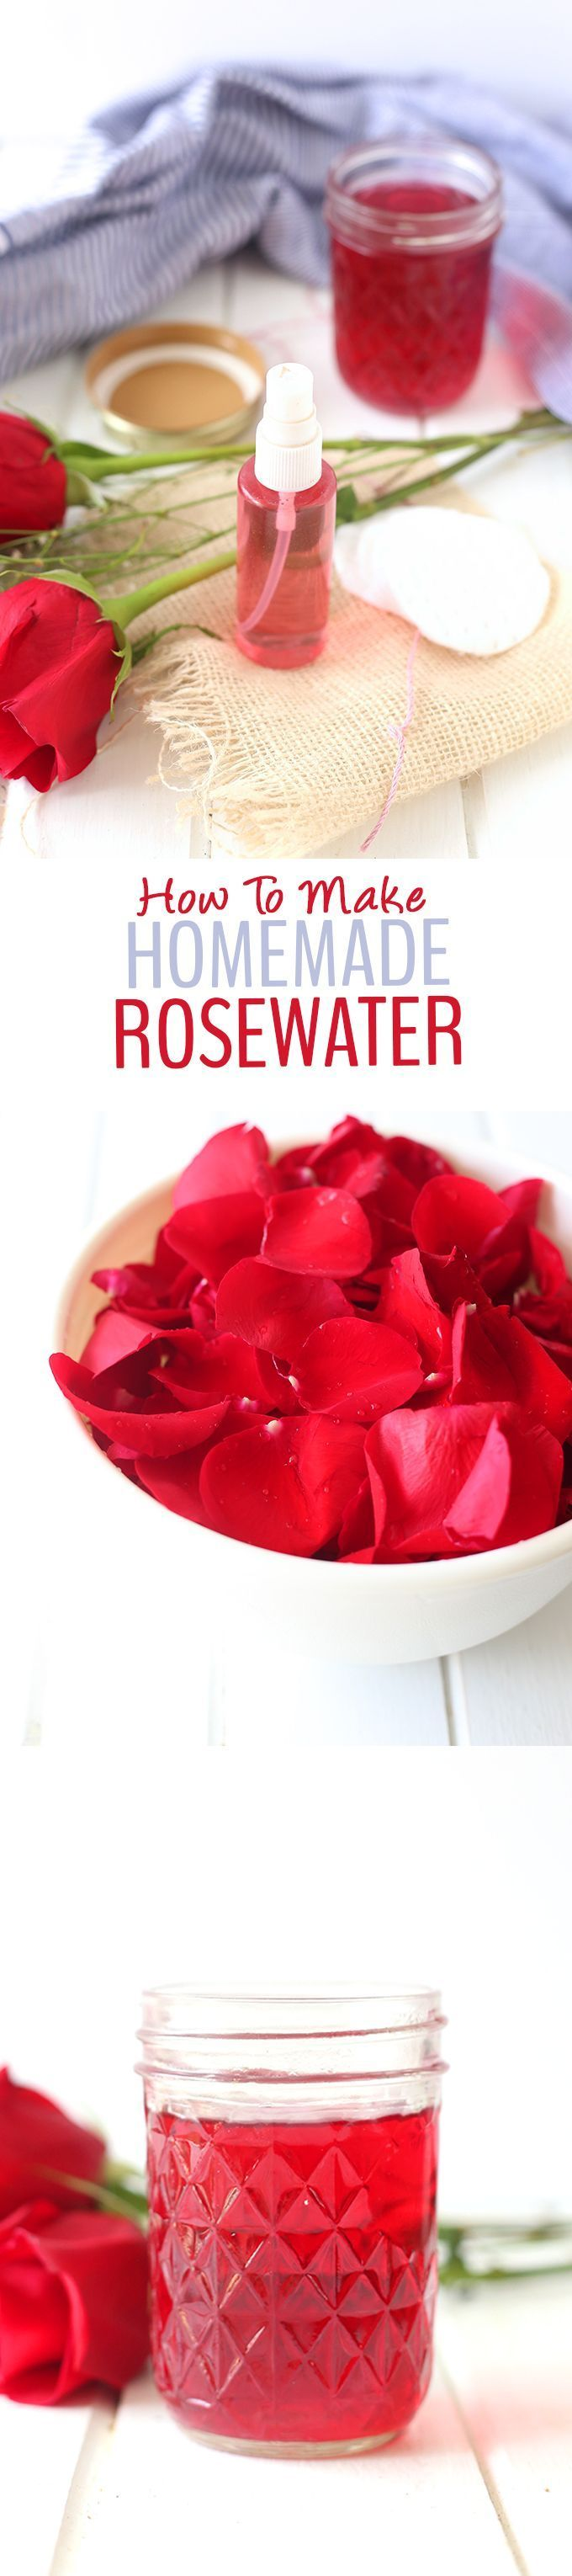 A step-by-step tutorial on how to make homemade rosewater + a recipe for DIY Ros...